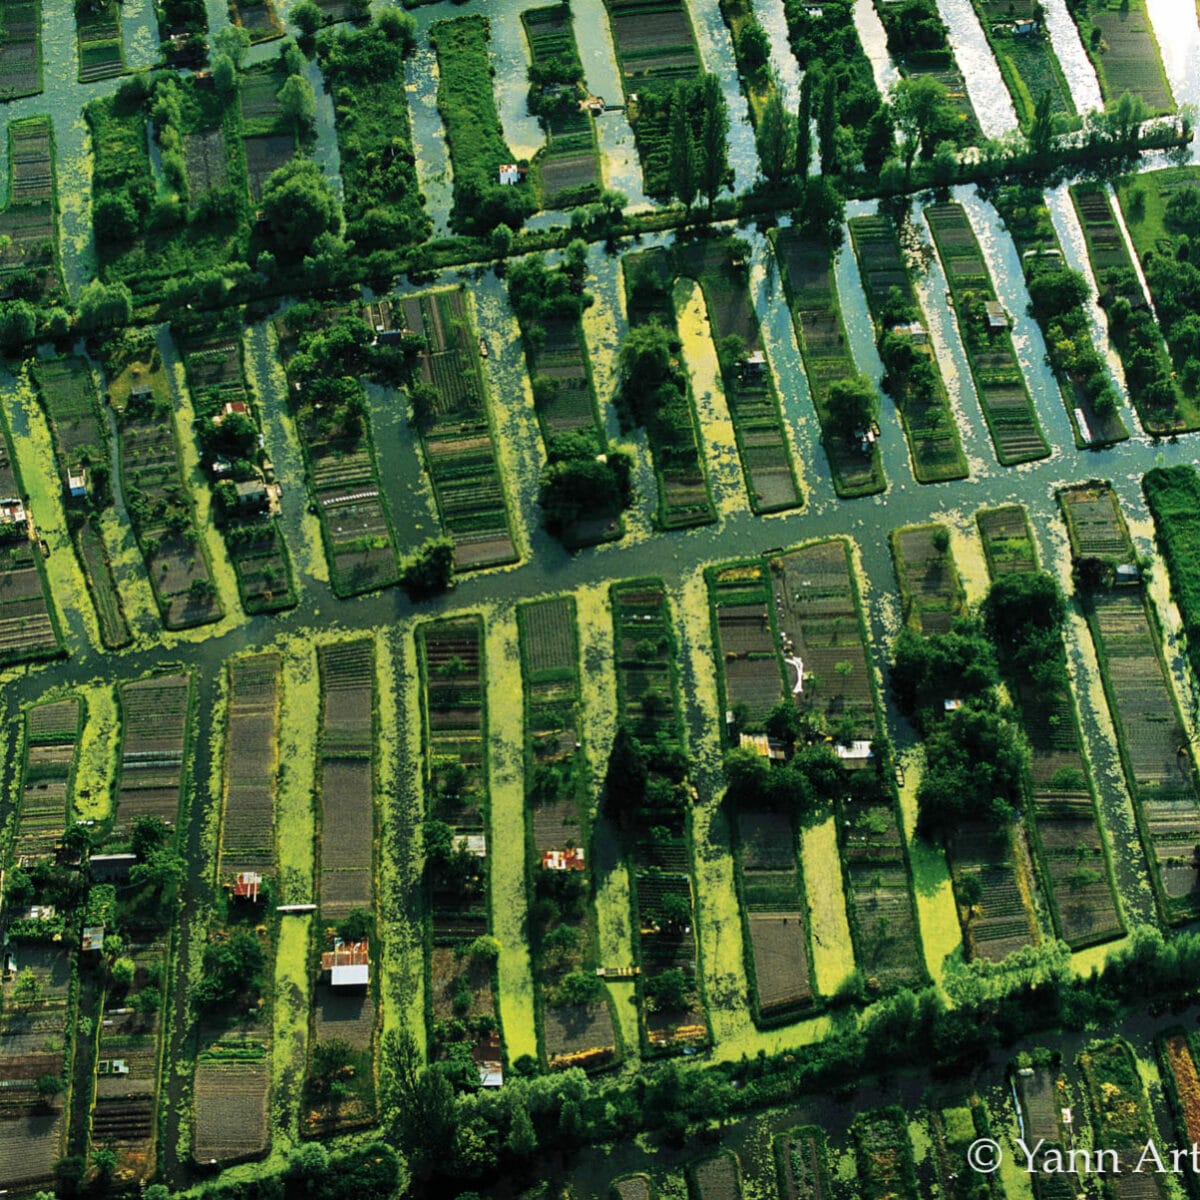 jardins potagers agriculture alimentation overshoot day